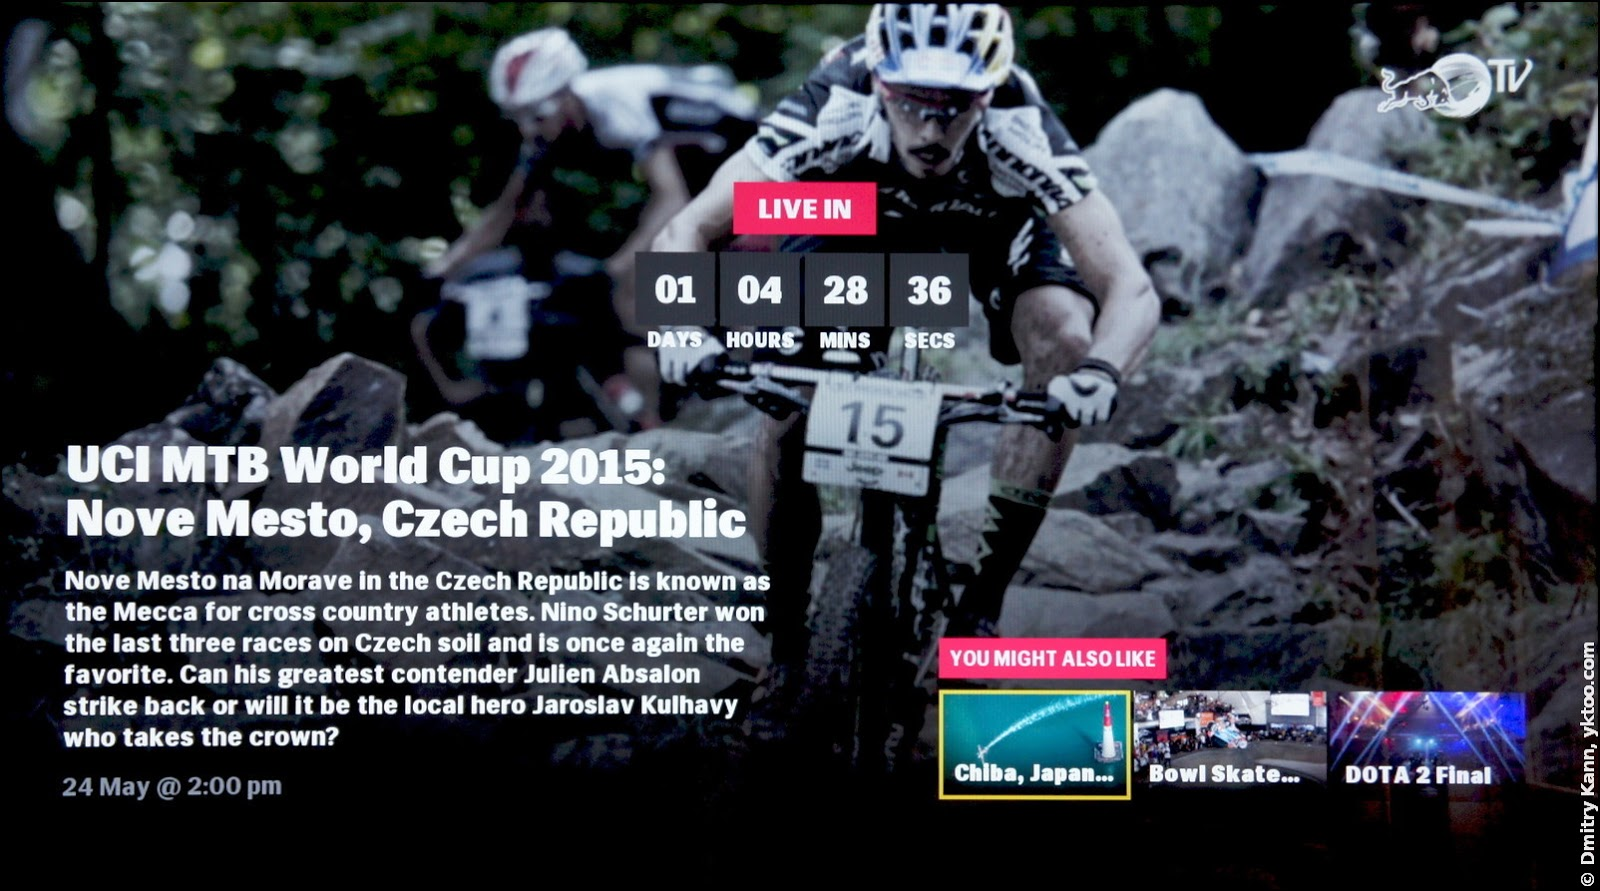 Red Bull TV: countdown for a live event.